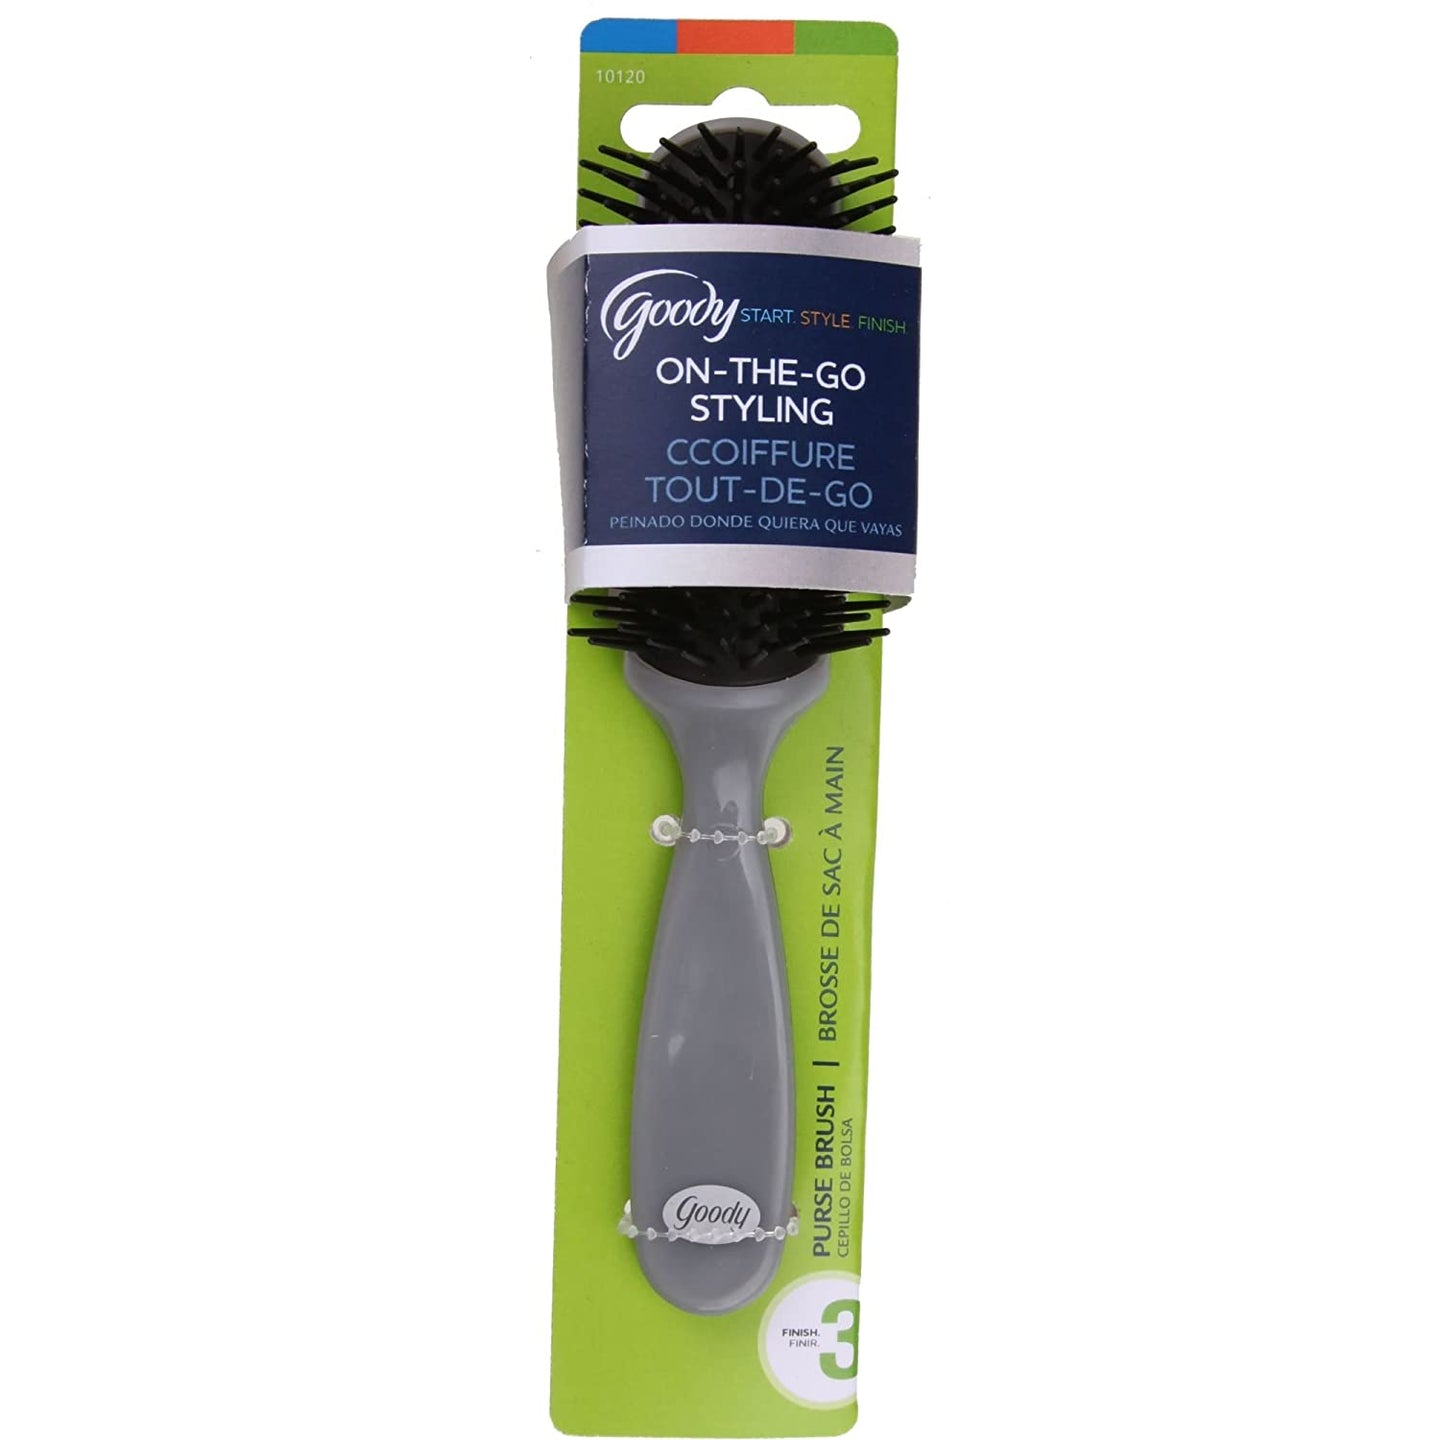 Goody Styling Essentials Purse Flair Brush